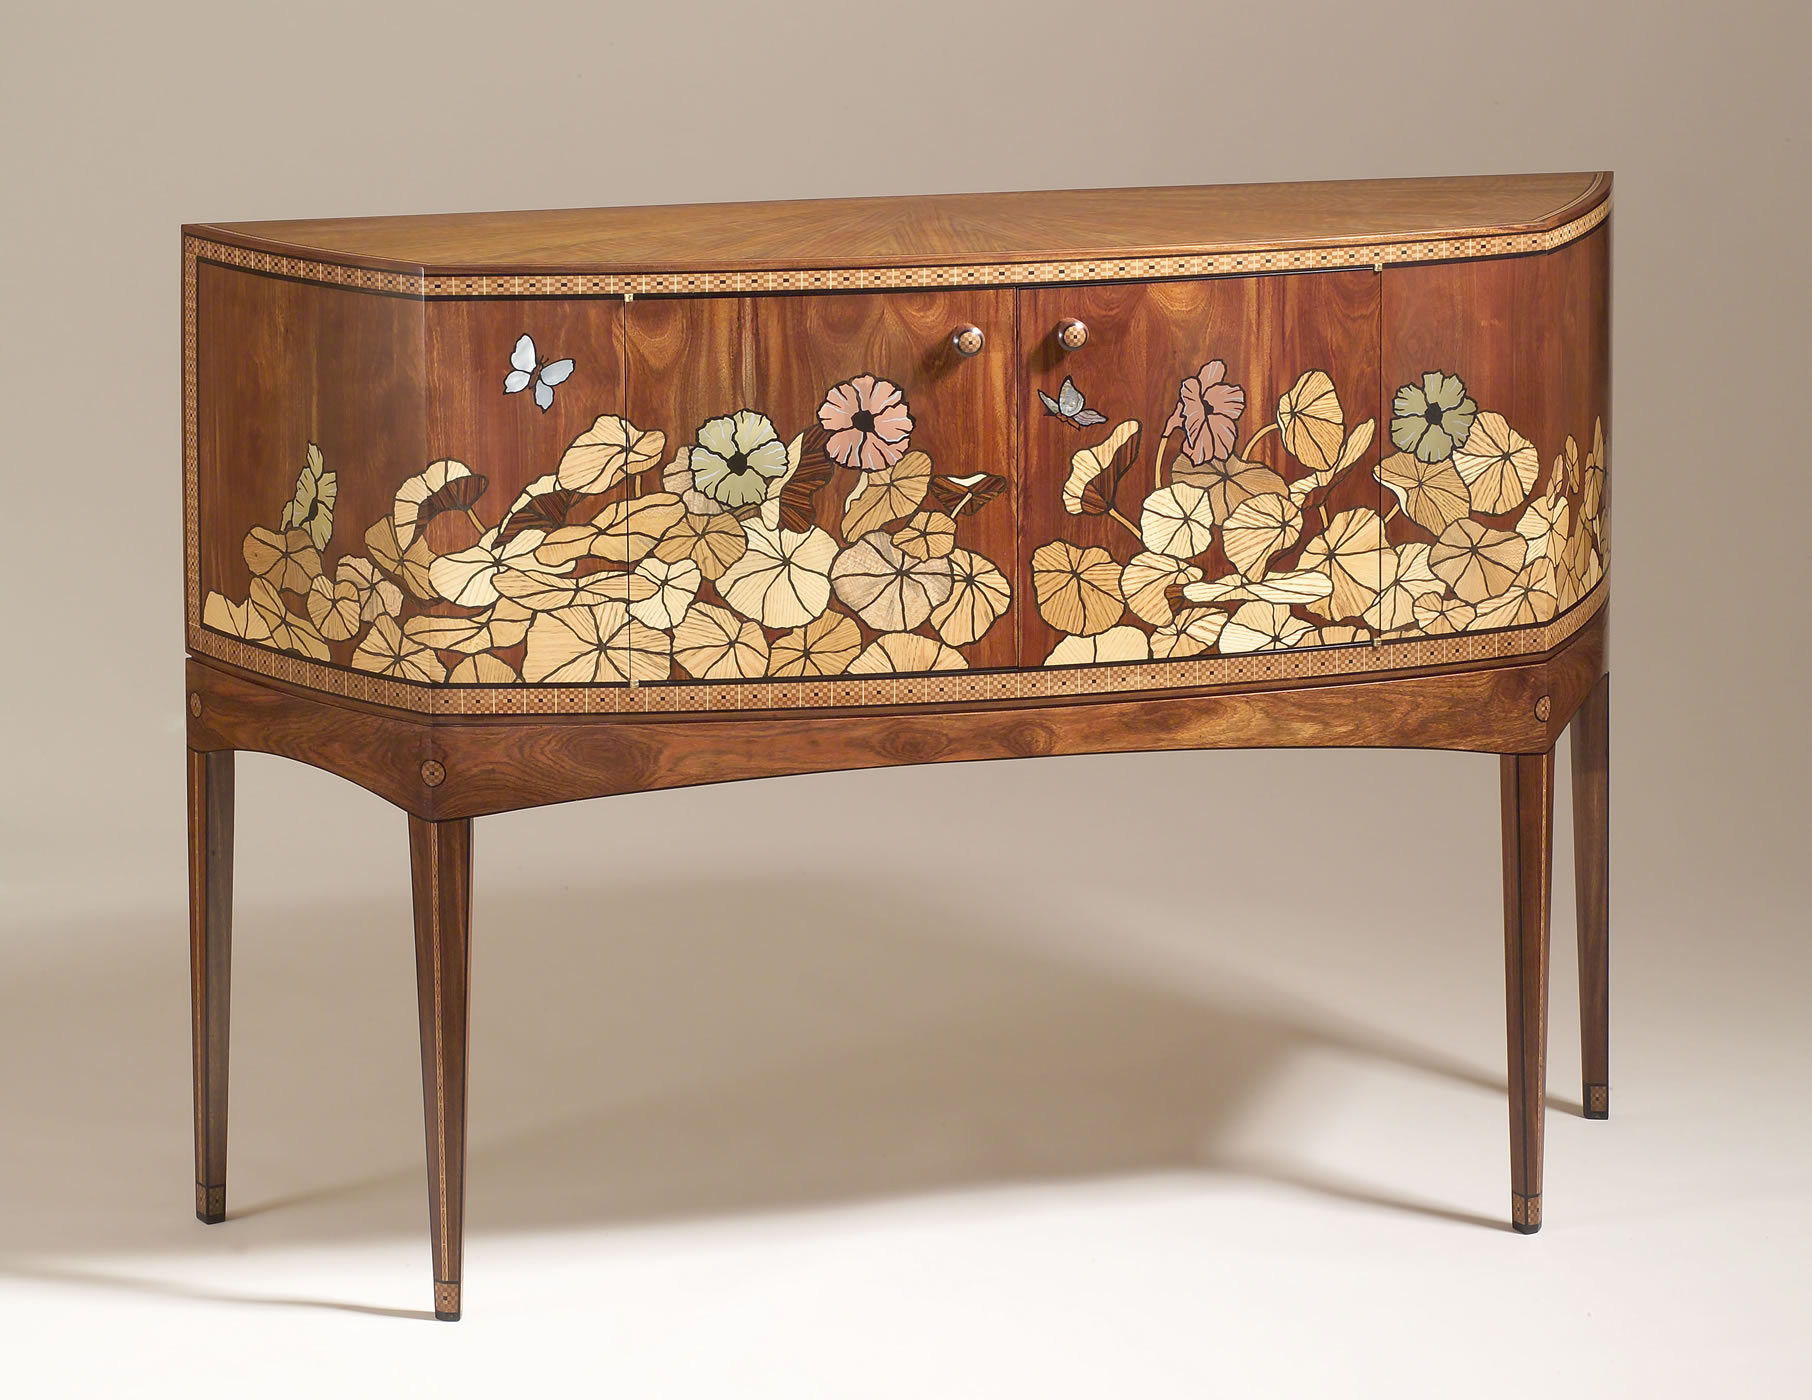 "Granadillo And Marquetry W/ Brass, Copper, And Shell 61"" X 18"" X 42"" H"